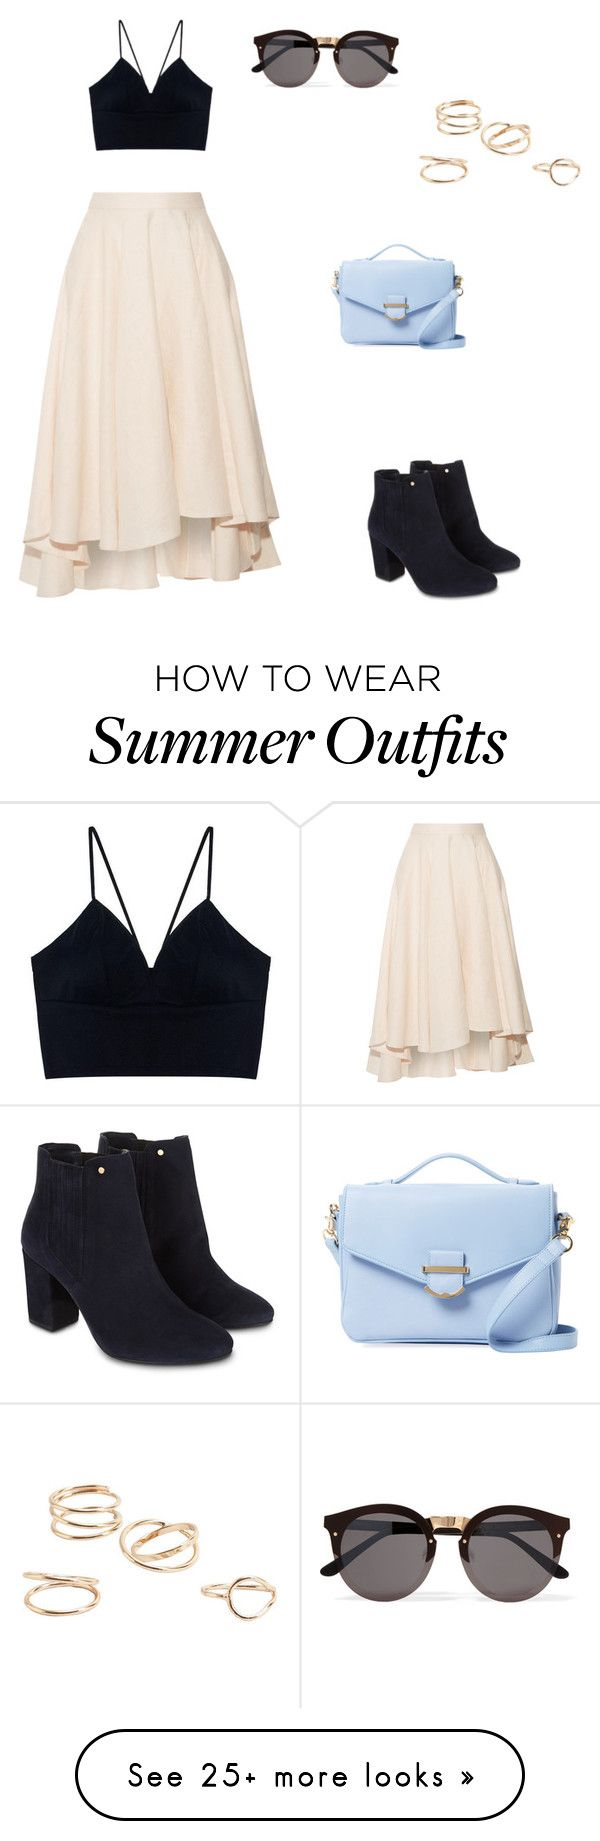 """Summer outfit"" by lauren-vanvuuren on Polyvore featuring Miguelina, MANGO, Monsoon, Cynthia Rowley and Illesteva"